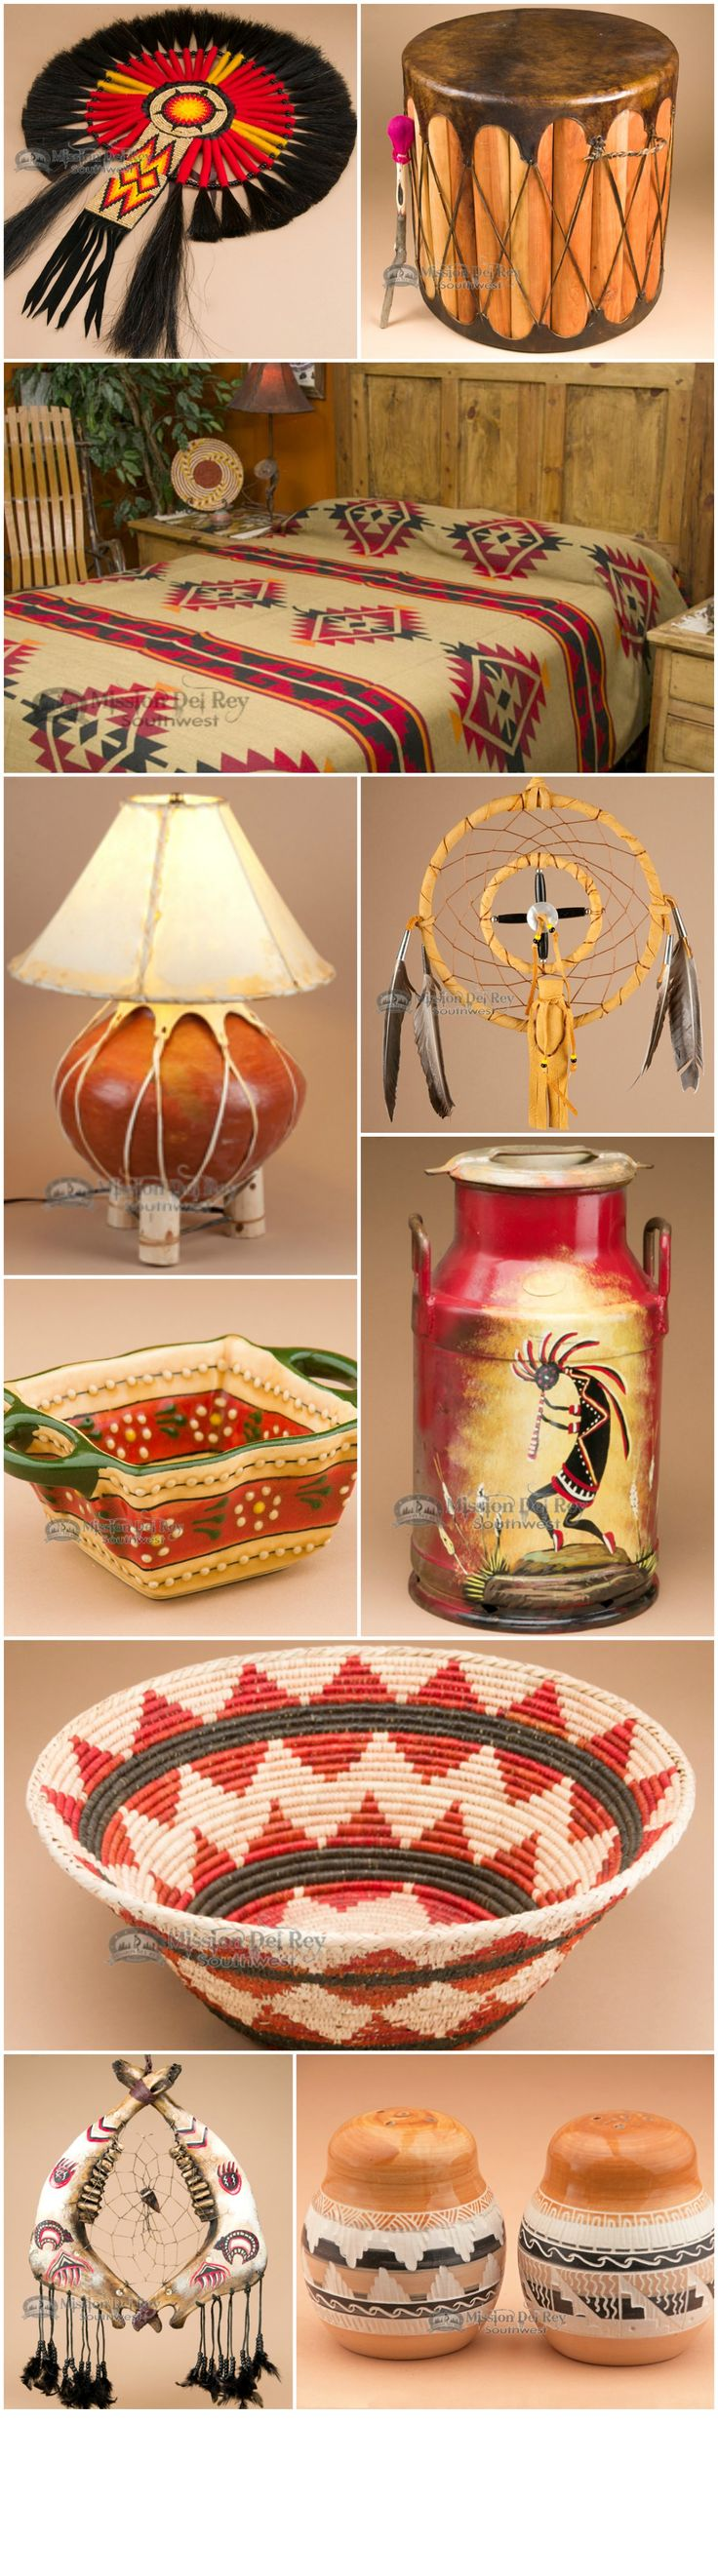 25 best ideas about rustic lamp shades on pinterest rustic lamps lamp shades and painting - Hemp rope craft ideas an authentic rustic feel ...